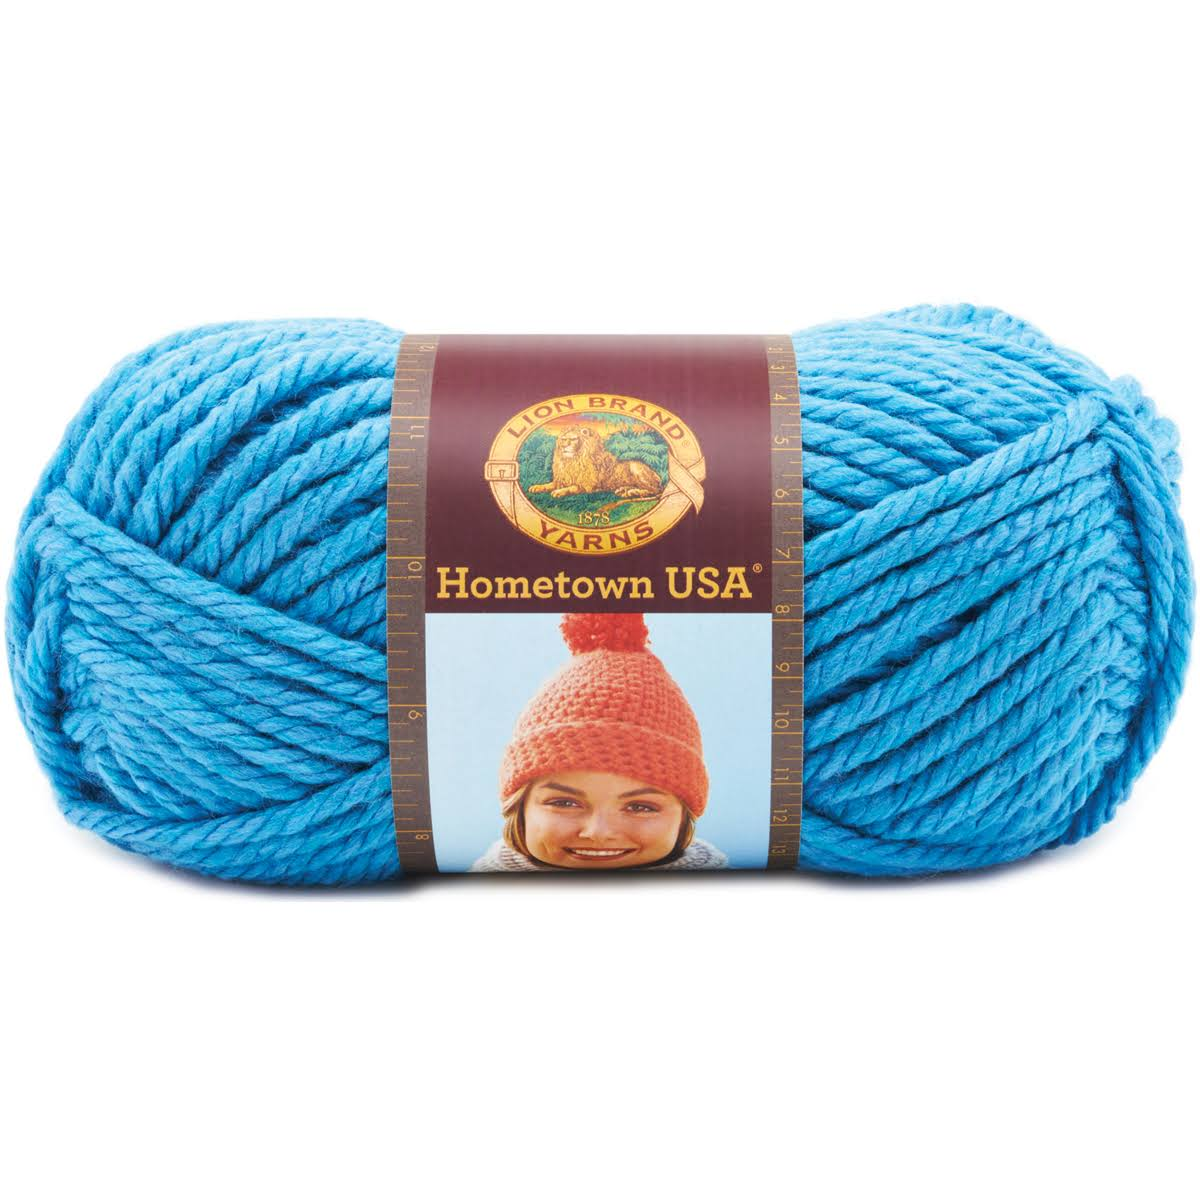 Lion Brand Detroit Blue - Hometown USA Yarn